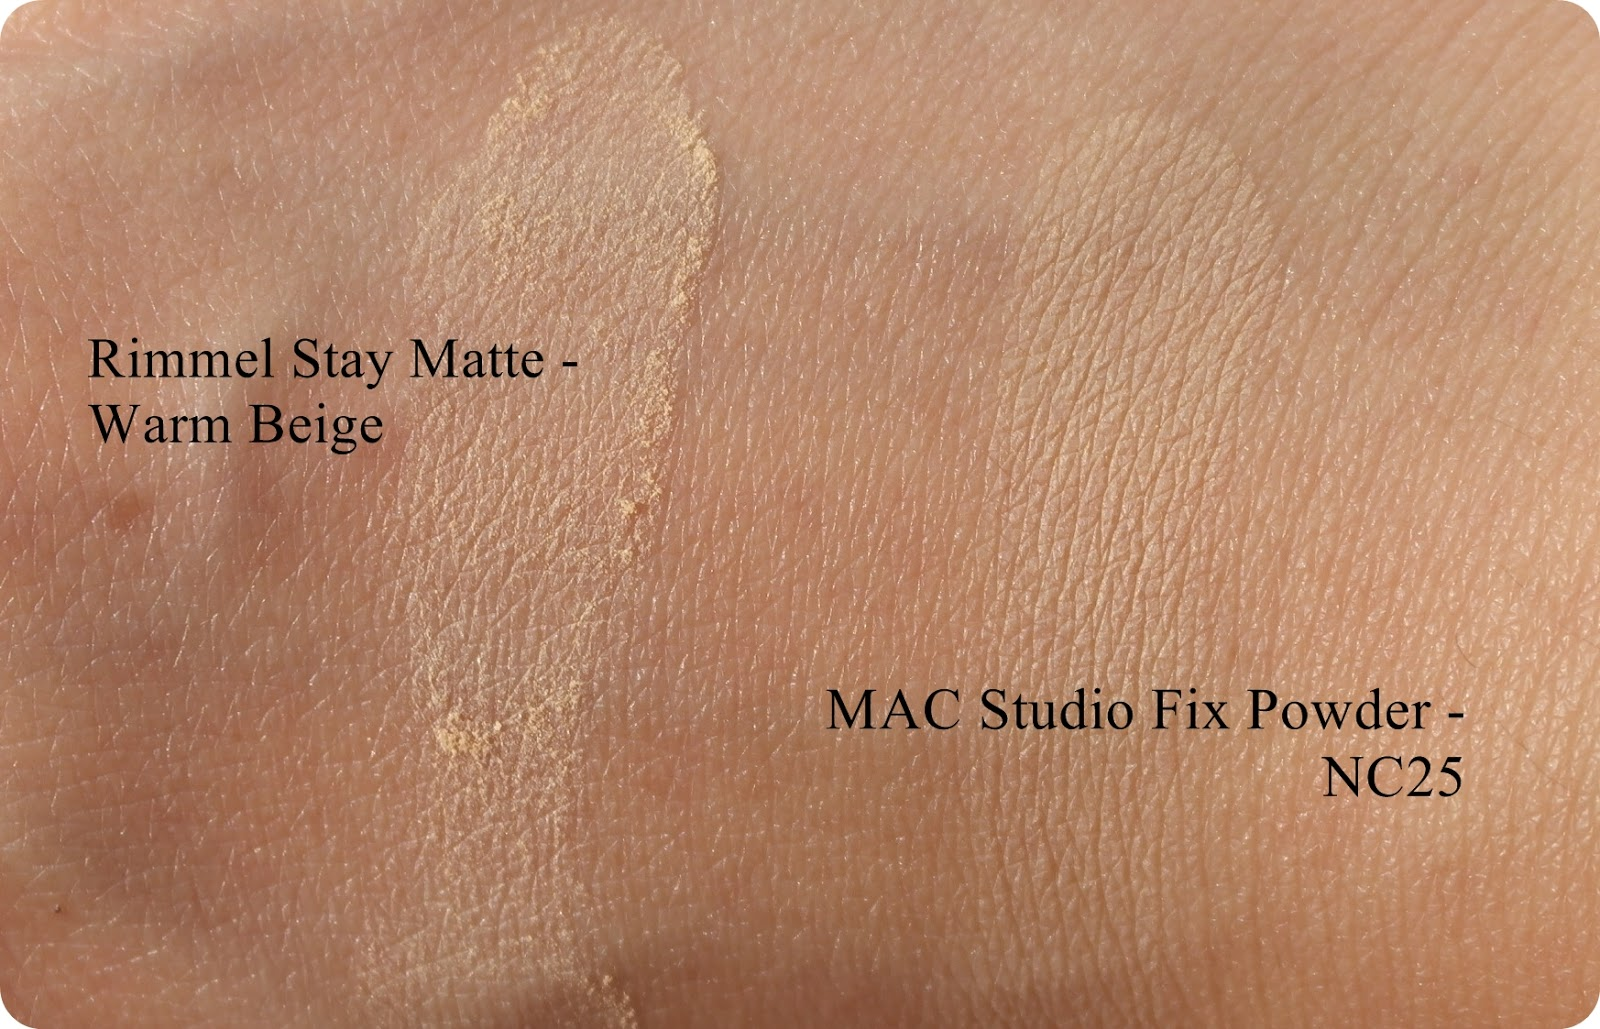 Rimmel Stay Matte Pressed Powder and MAC Studio Fix Powder Plus Foundation swatch, dupe, review and comparison